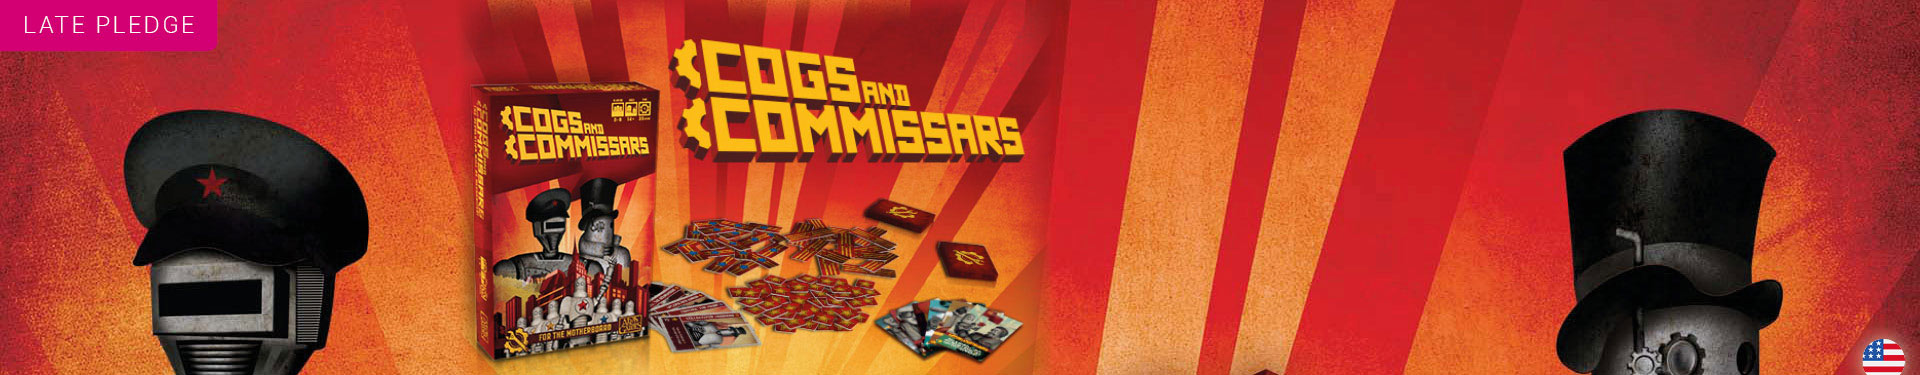 Cogs & Commissars